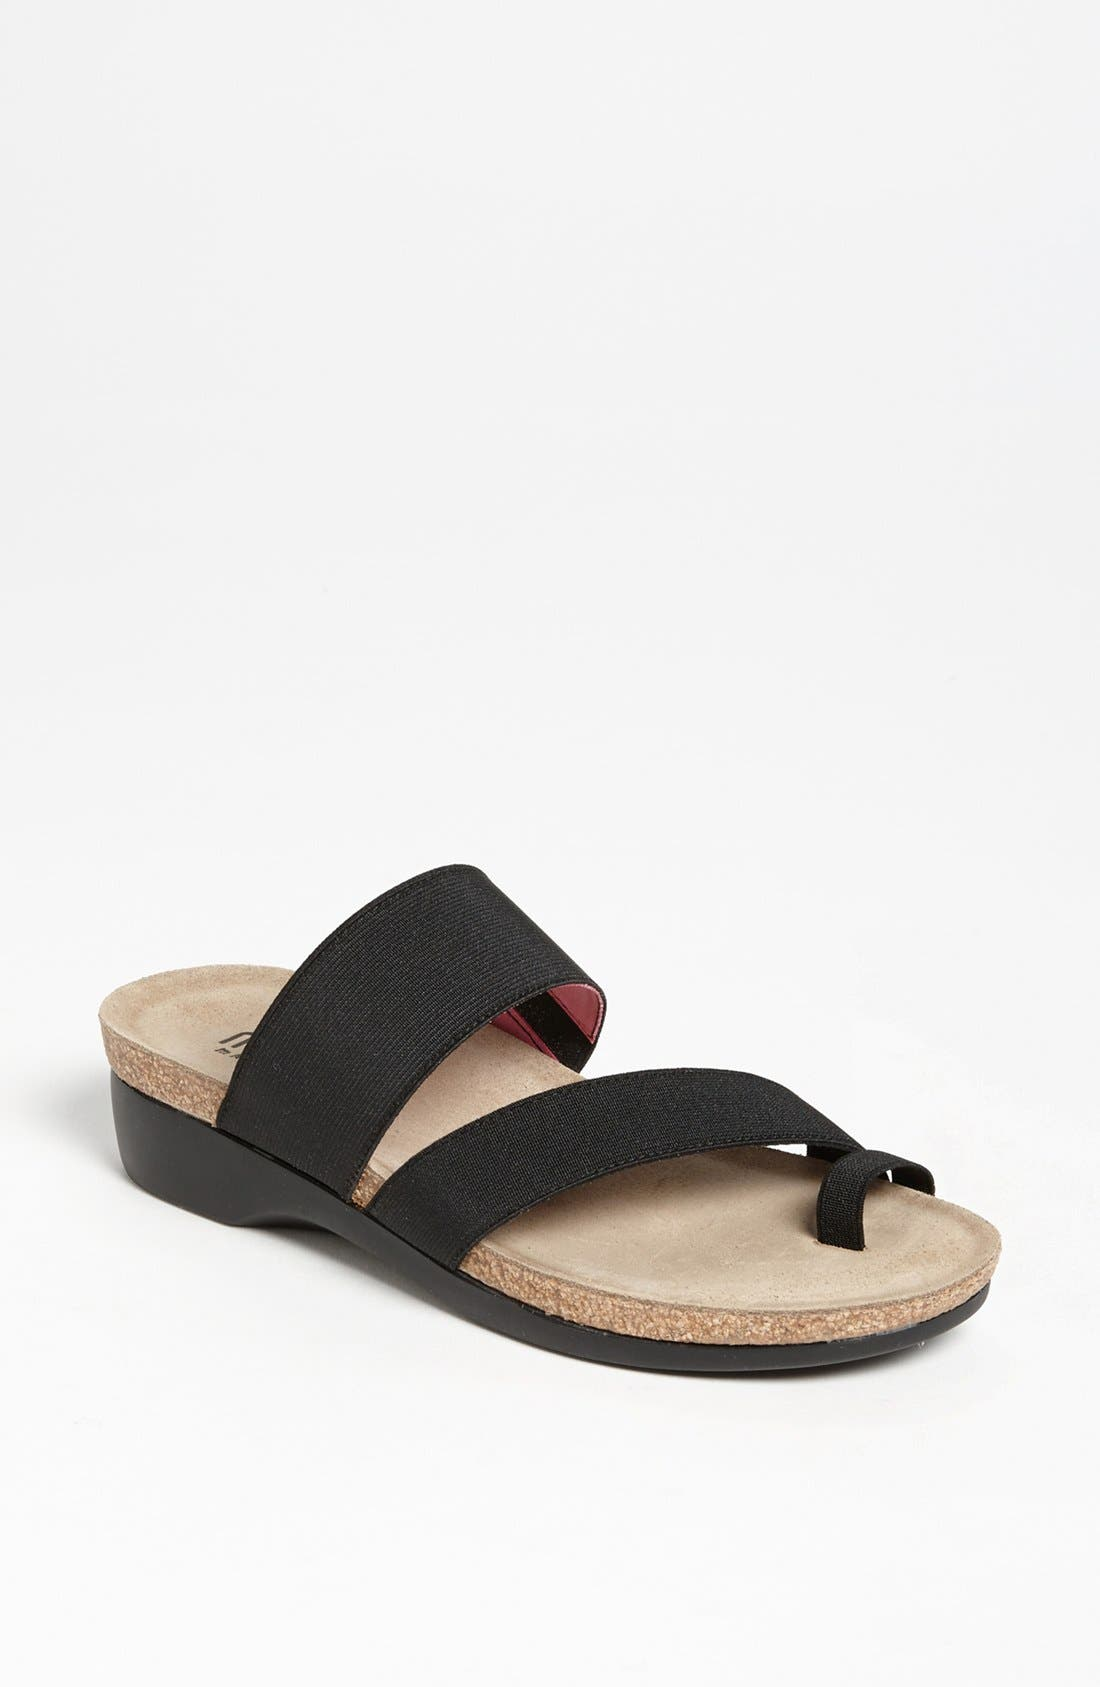 'Aries' Sandal,                         Main,                         color, BLACK